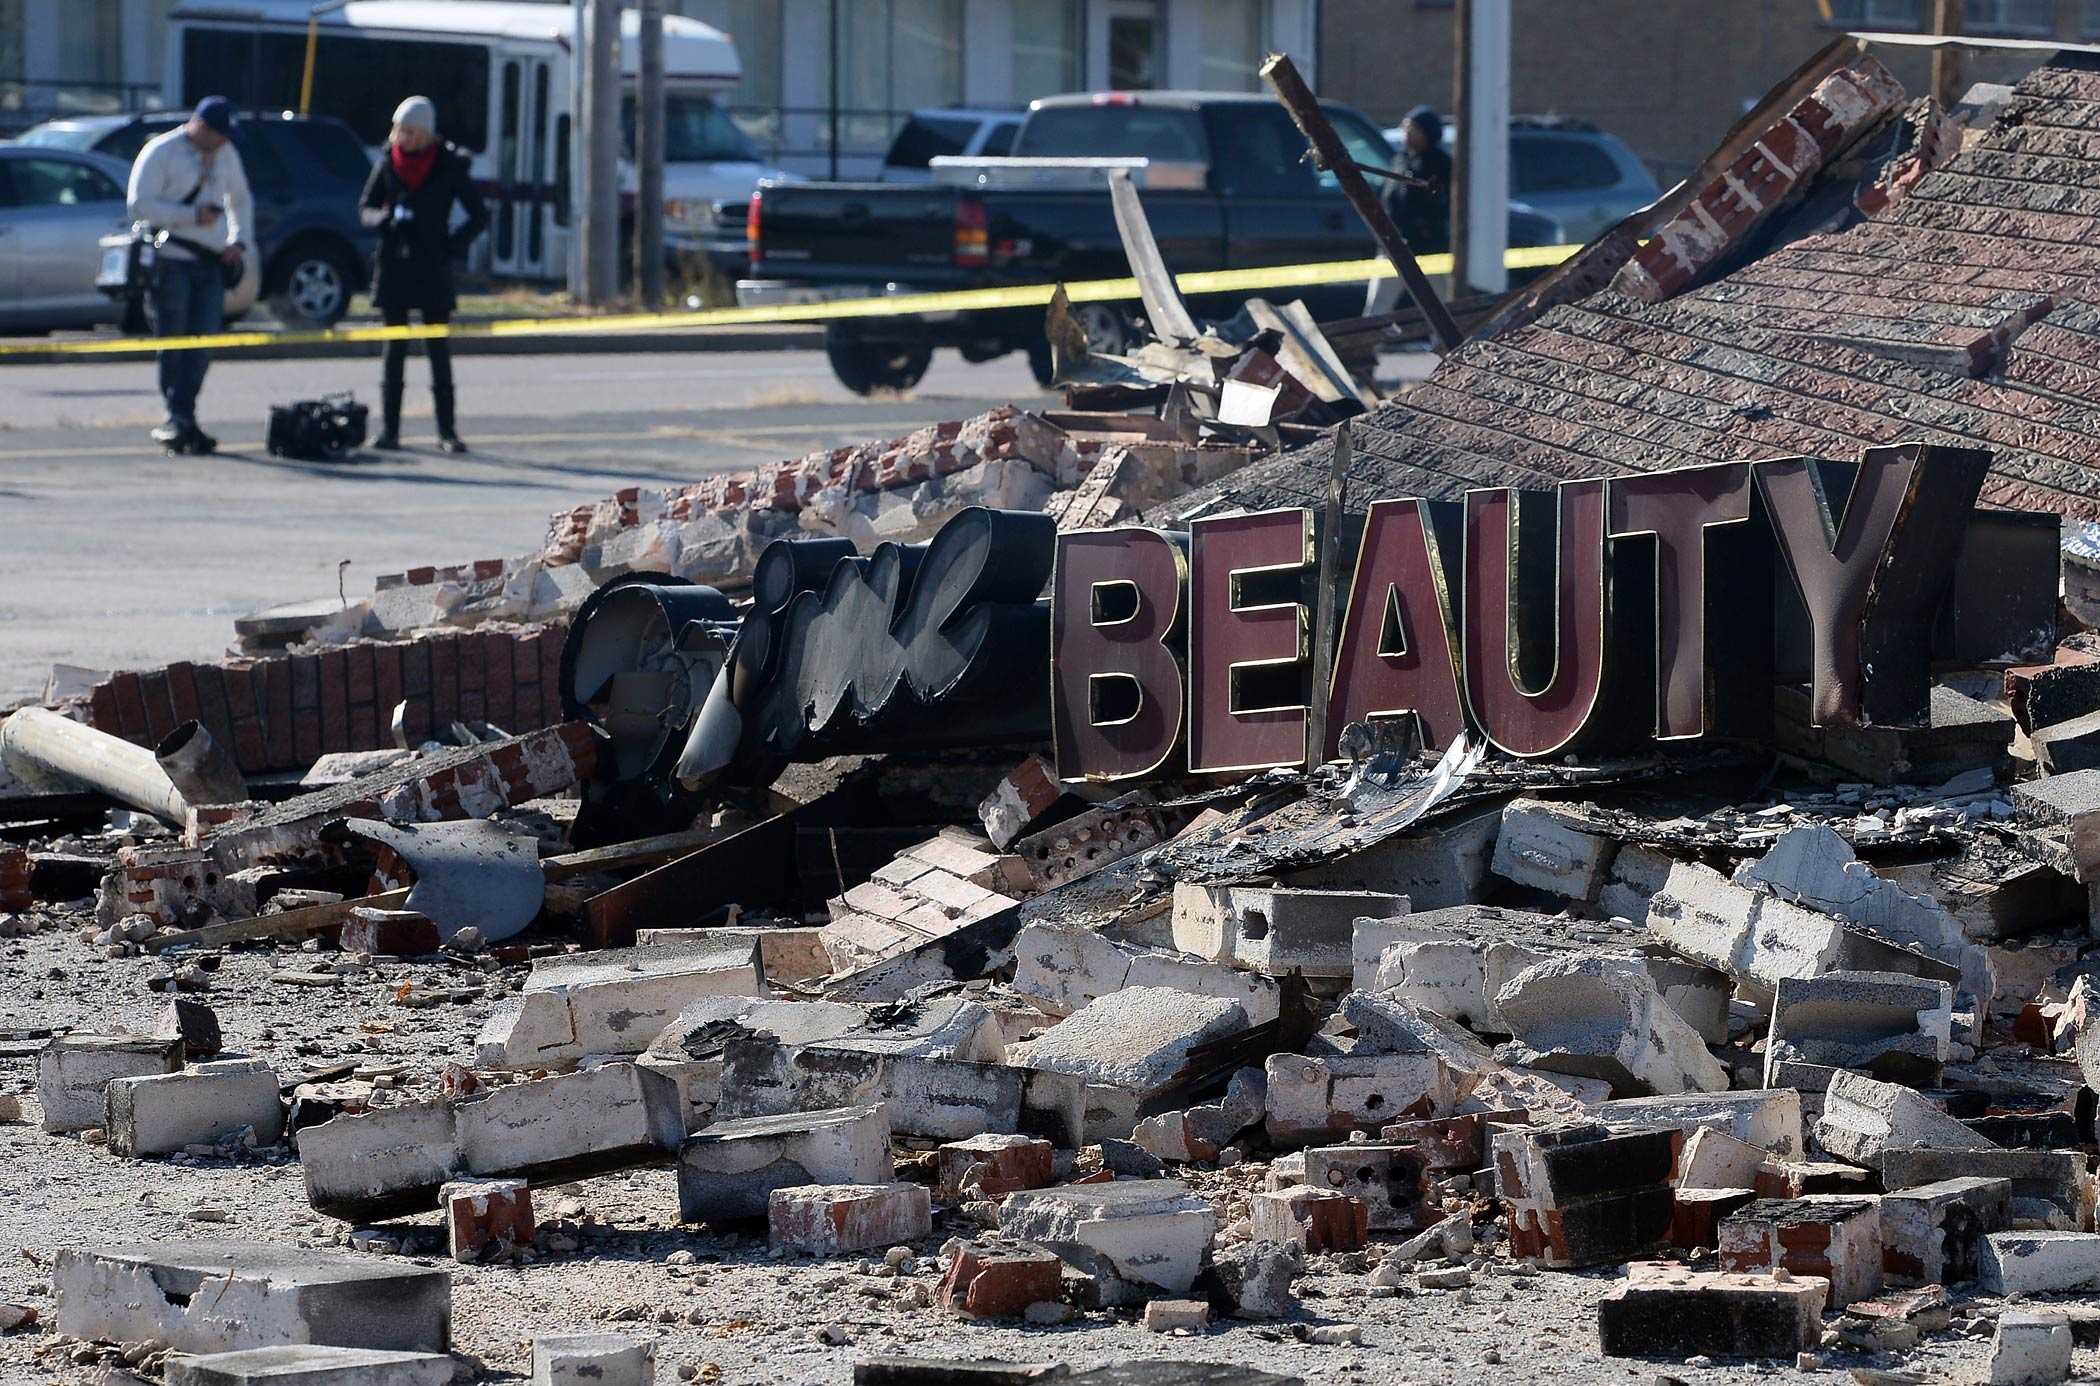 People walk past a collapsed building where protesters and looters rampaged businesses following the grand jury decision of Michael Brown, in Ferguson, Mo., on Nov. 25, 2014.